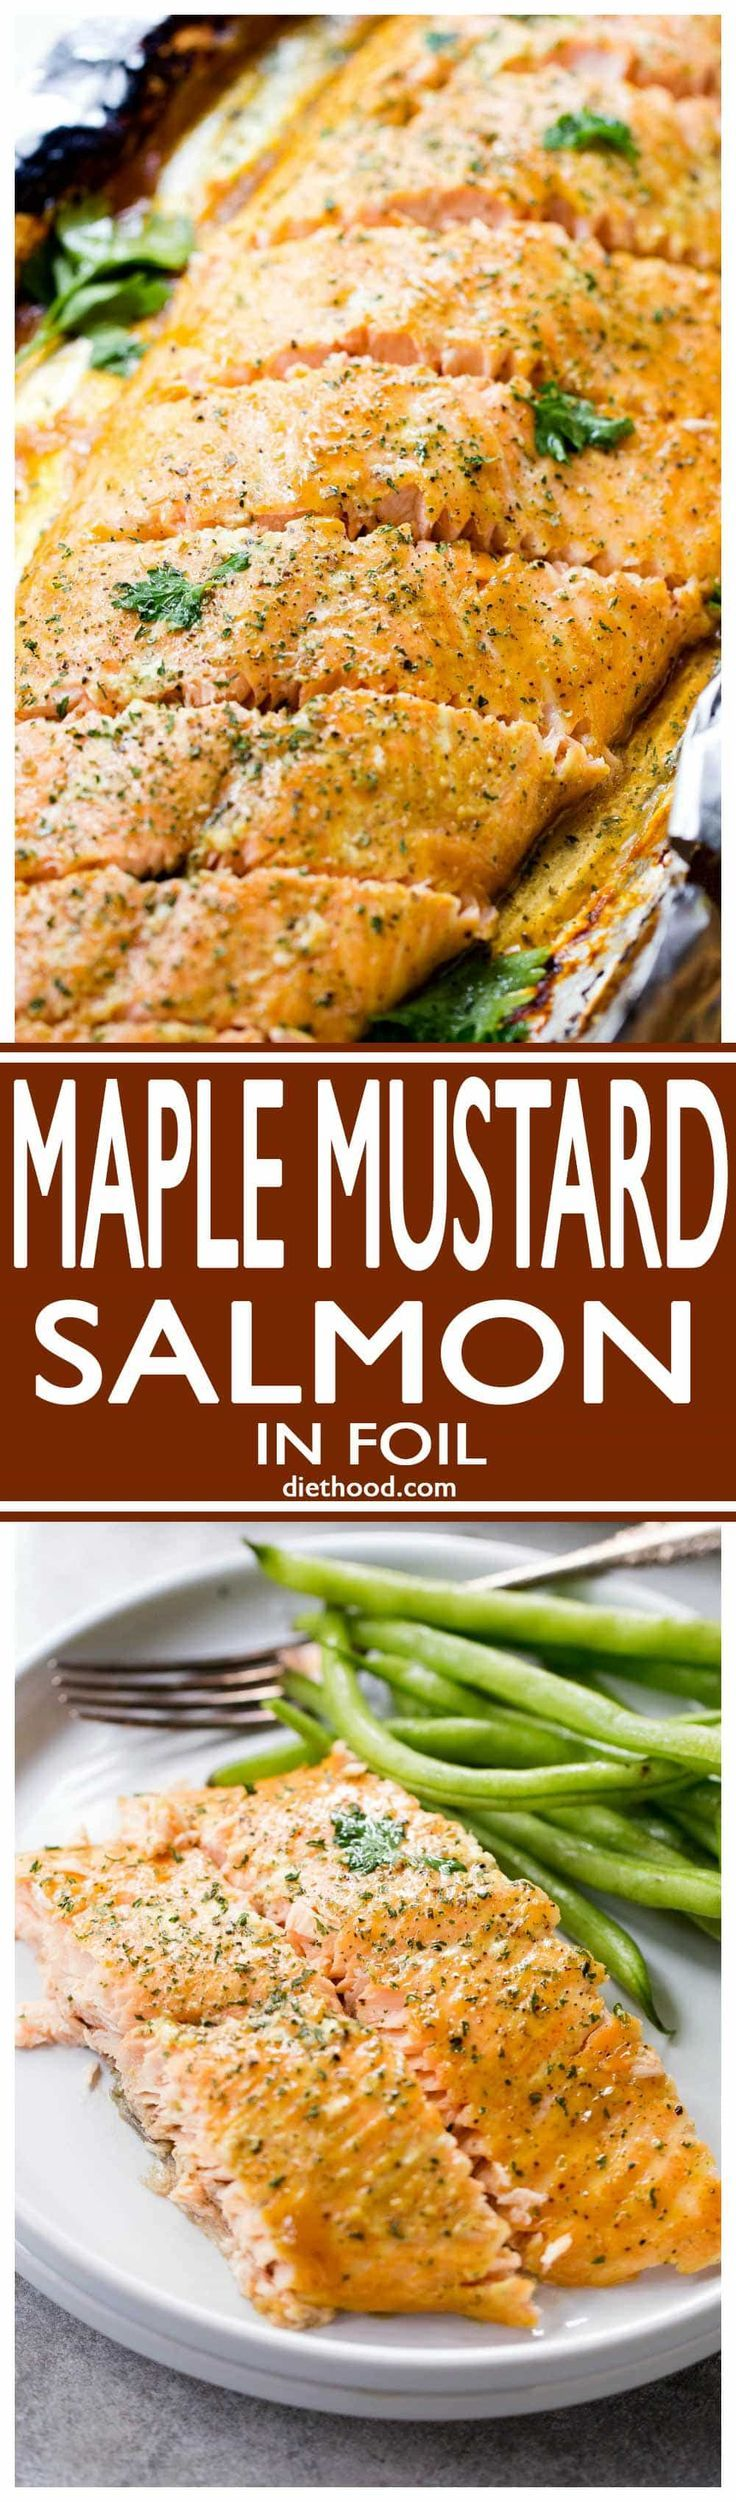 Maple Mustard Salmon In Foil Salmon Recipesfish